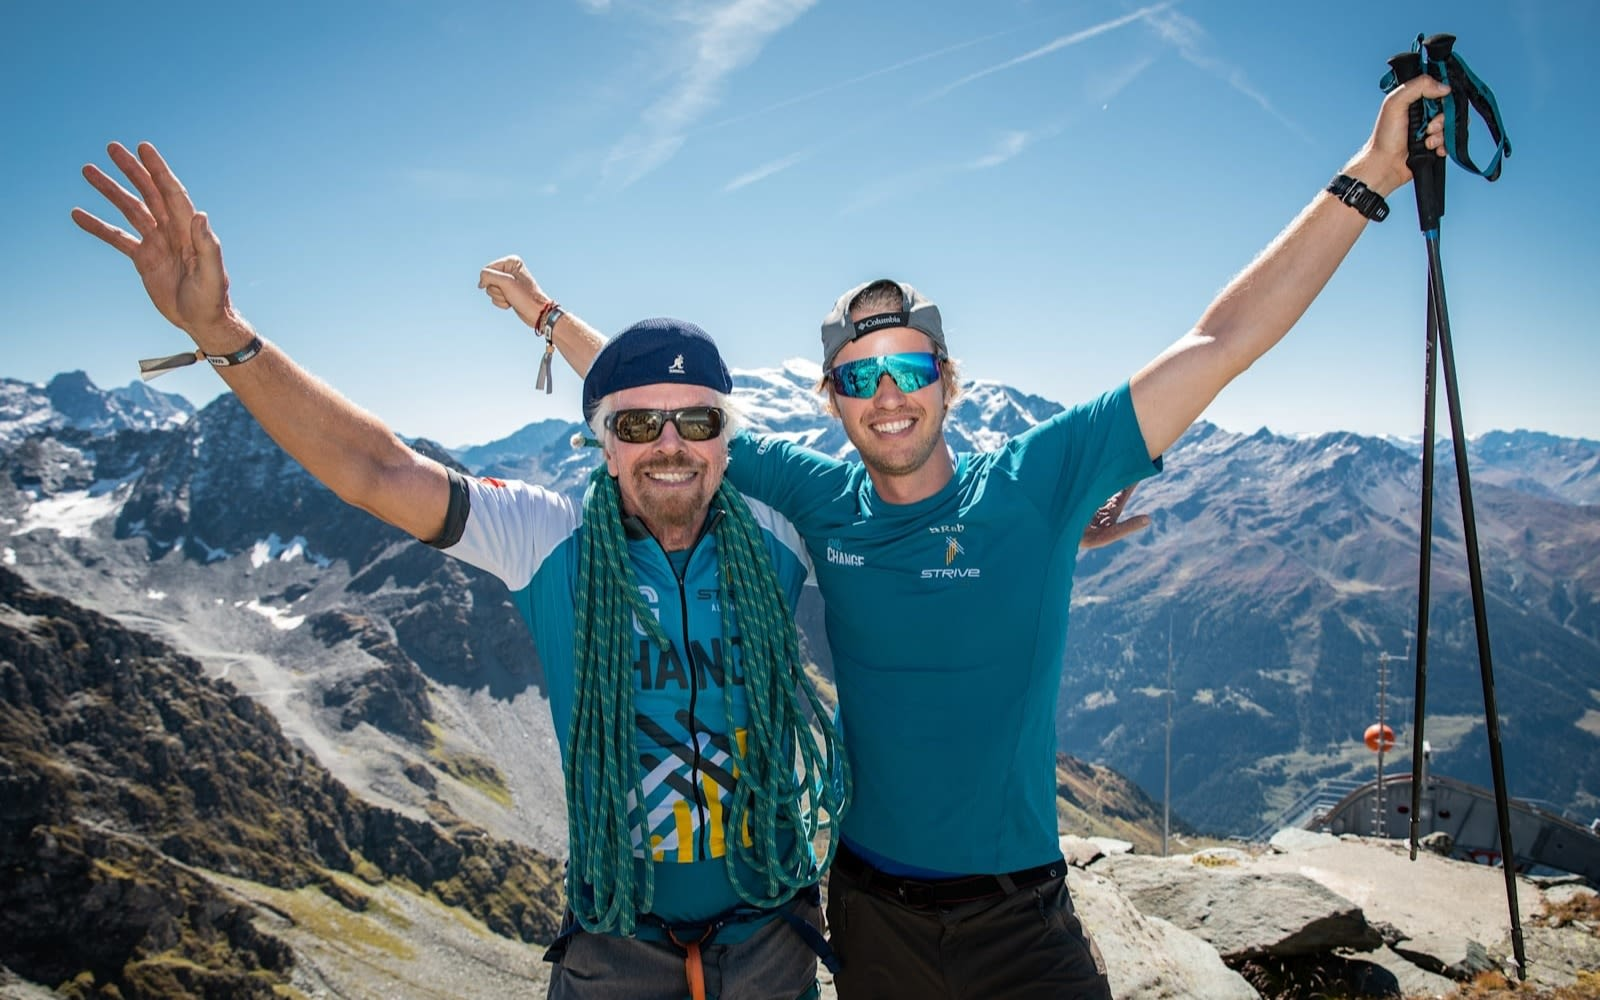 Richard Branson on the mountains during stive challenge